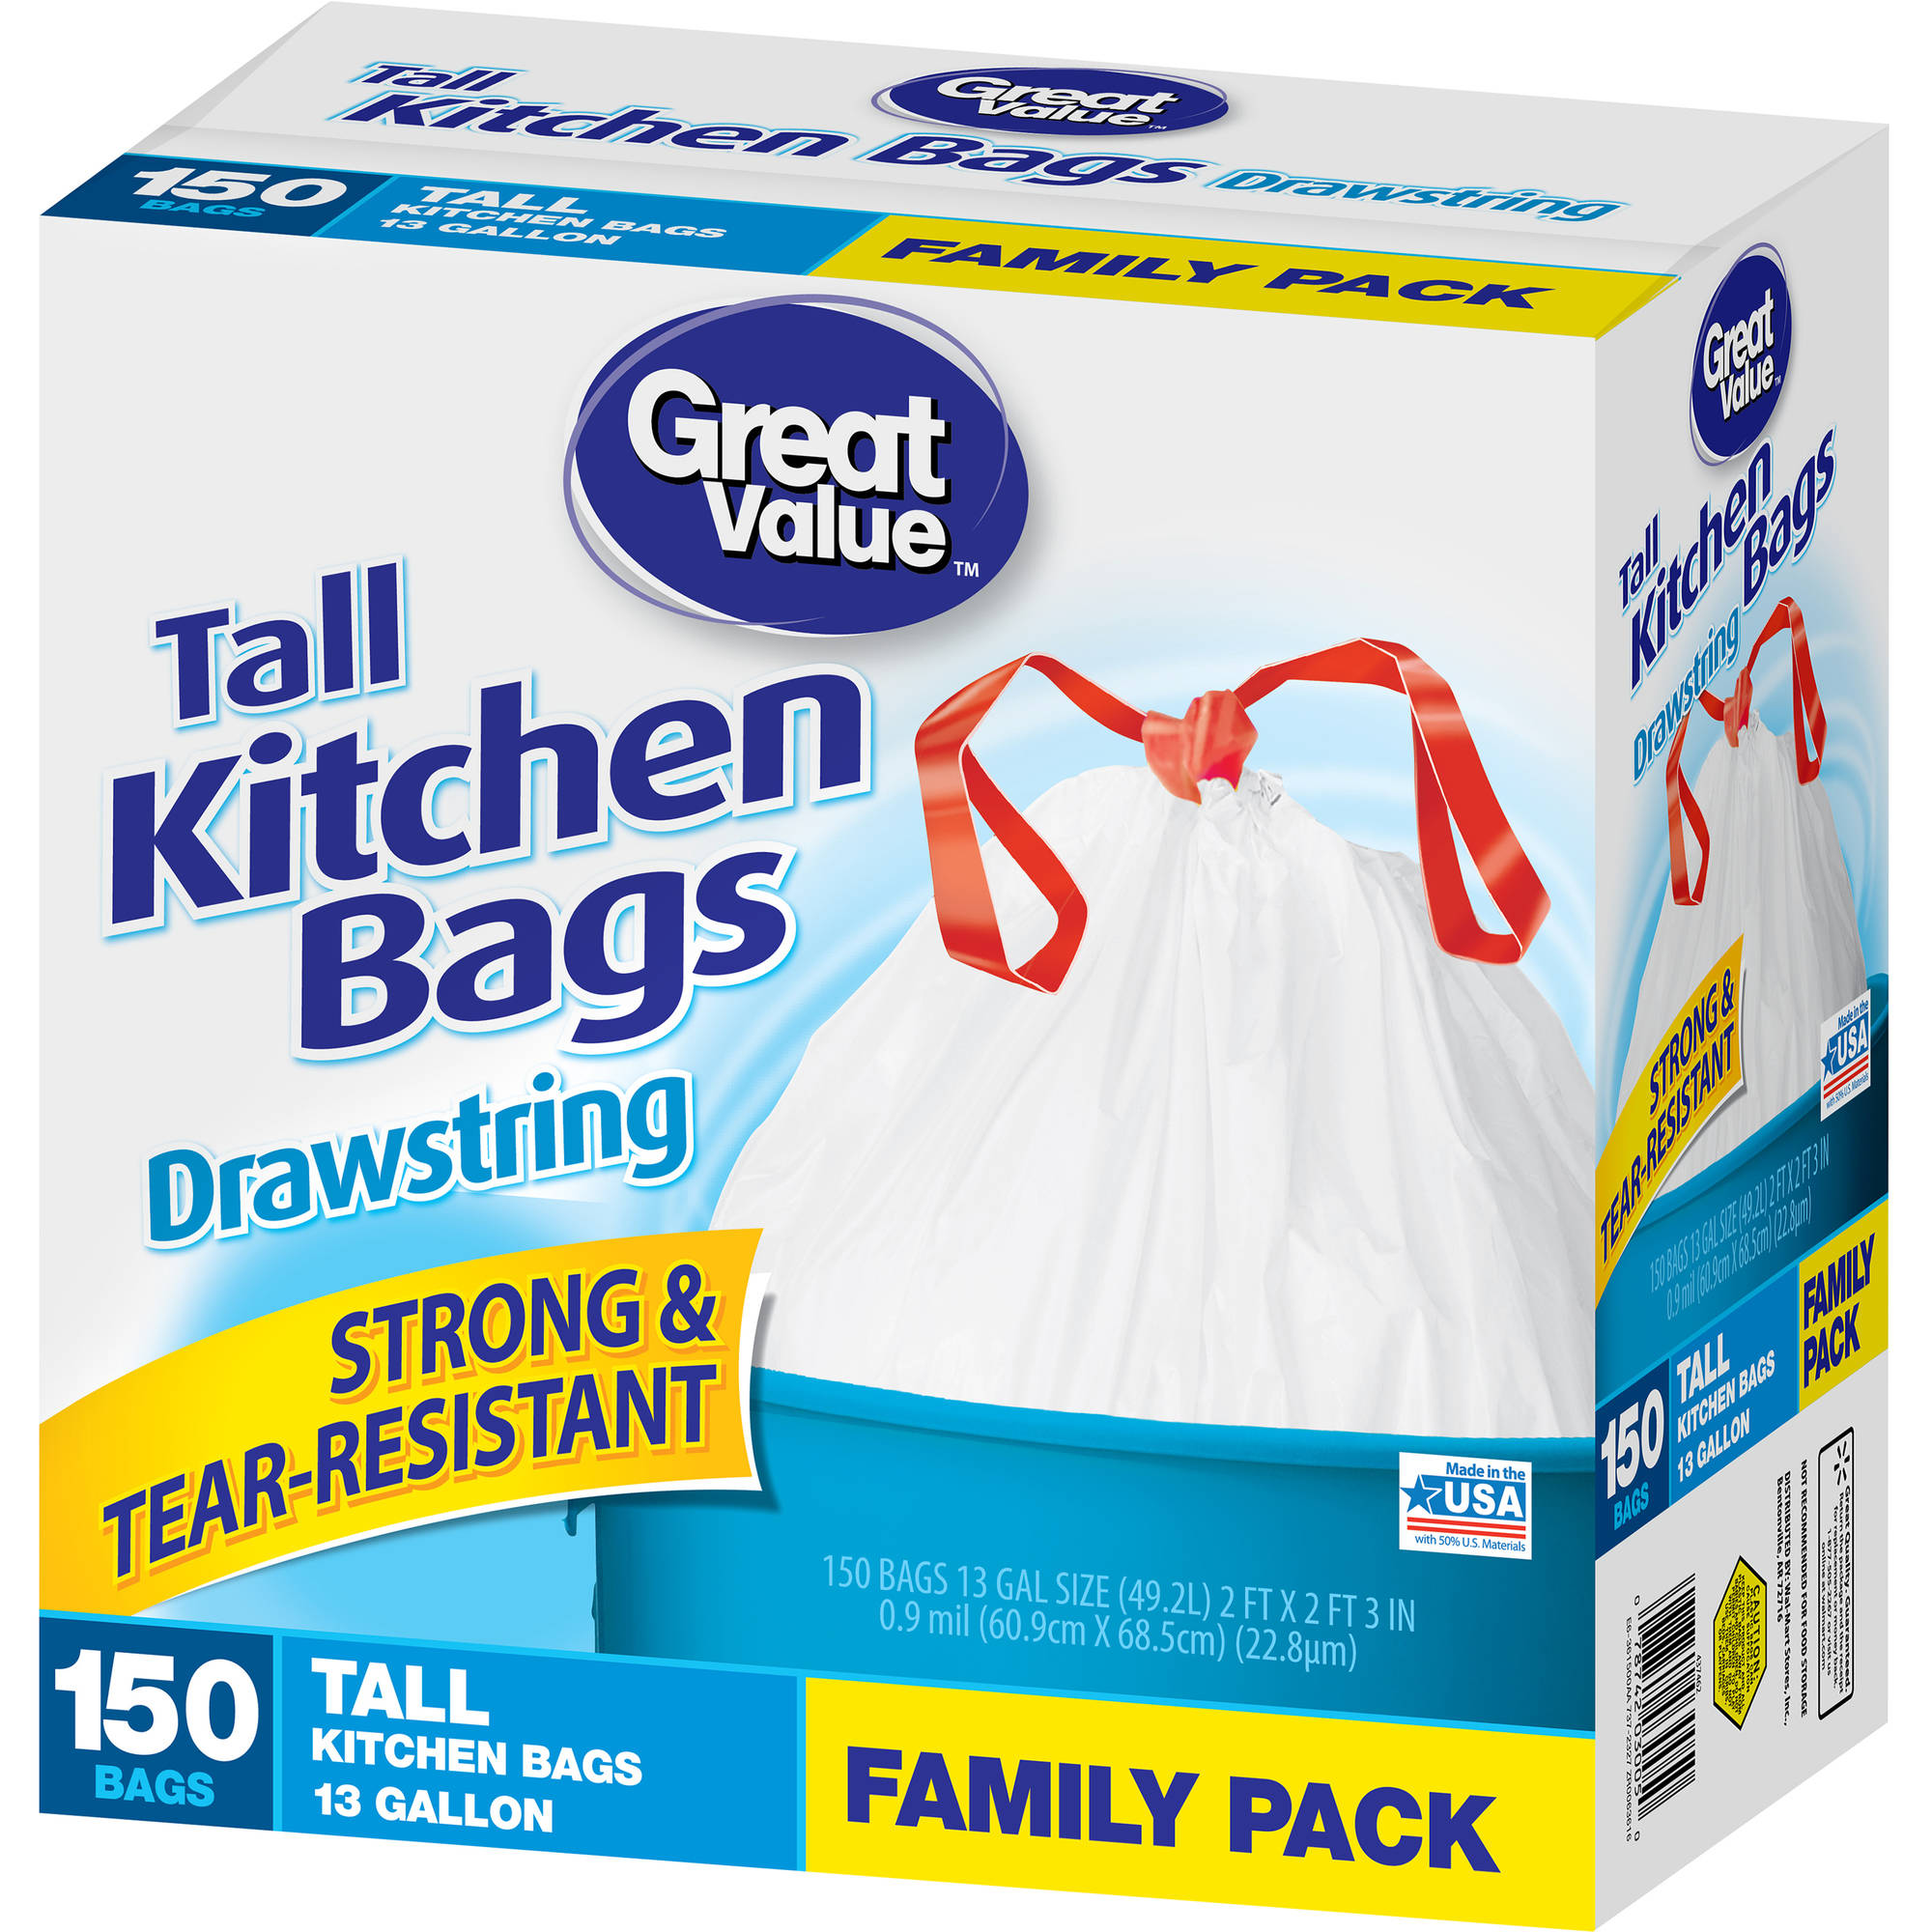 Great Value 13g Drawstring 150ct - Walmart.com